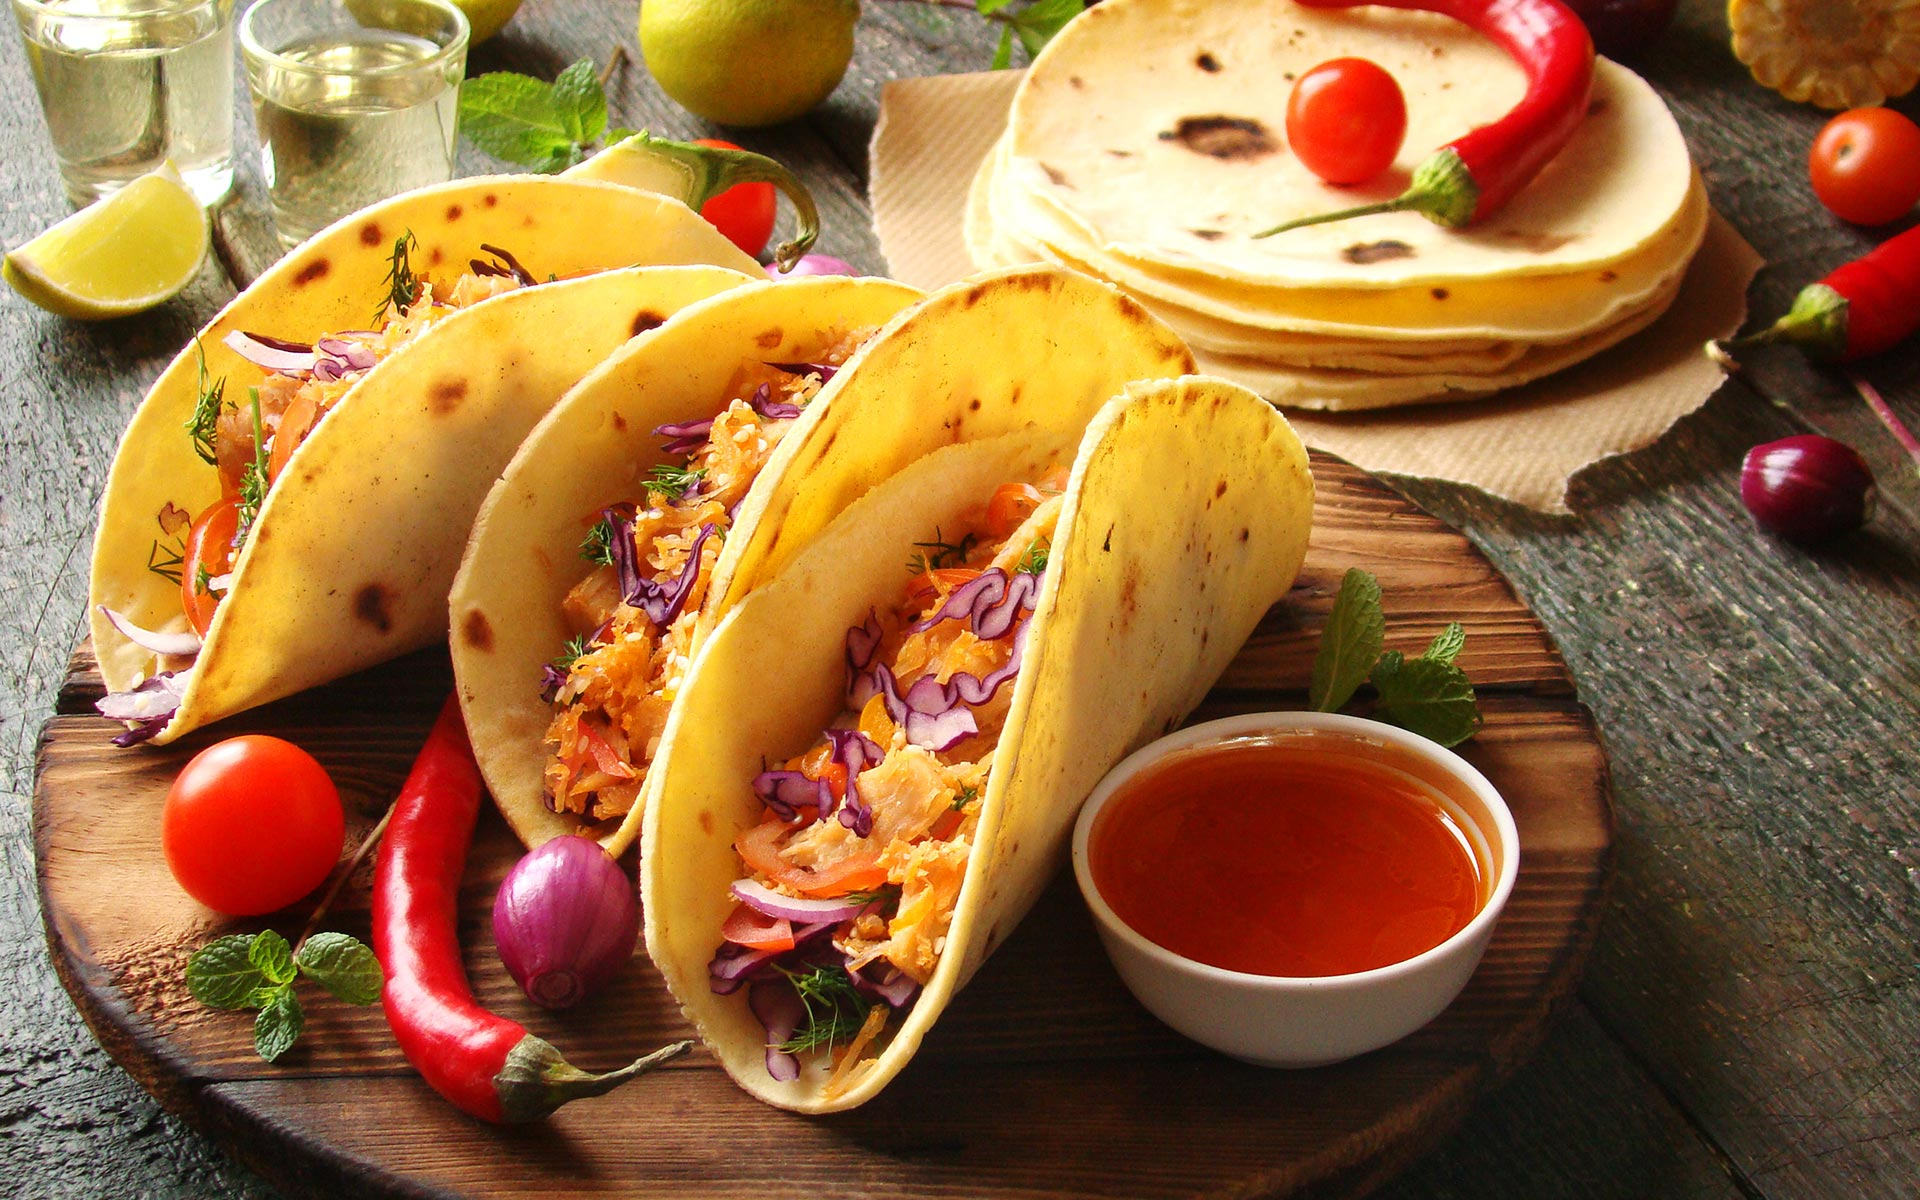 Restaurant Delivery Service Cape Fear Delivery Wilmington Food